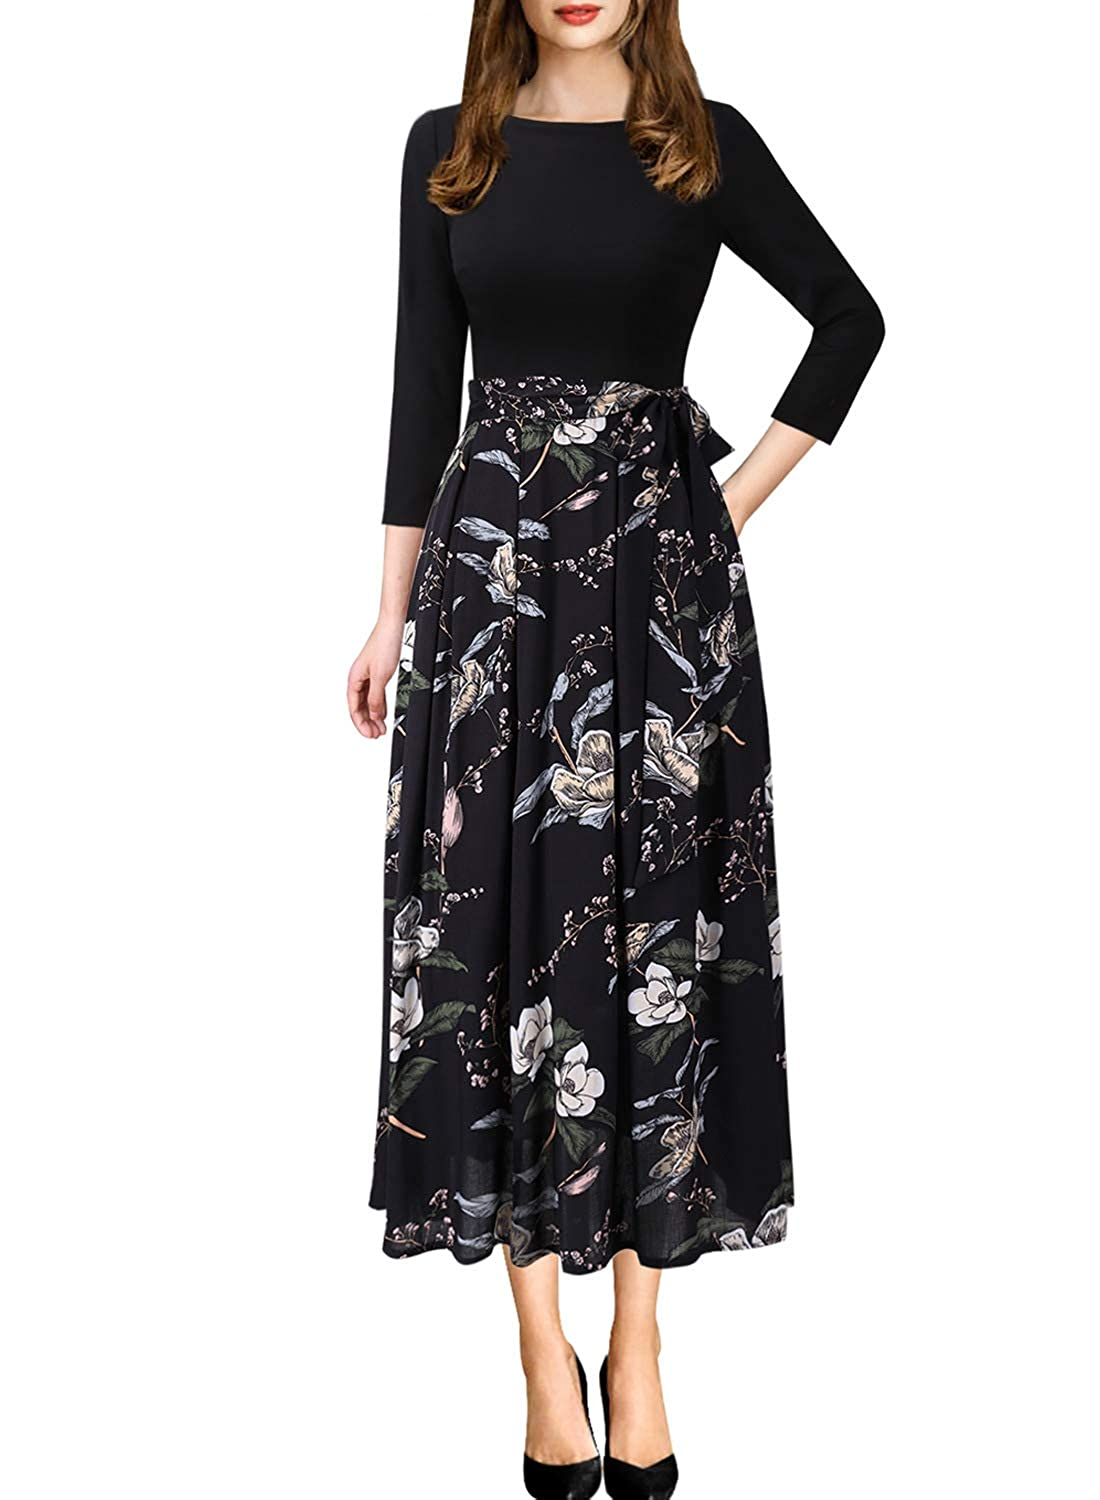 Black+multi Floral Print 3 VfEmage Womens Vintage Summer Polka Dot Wear To Work Casual Aline Dress